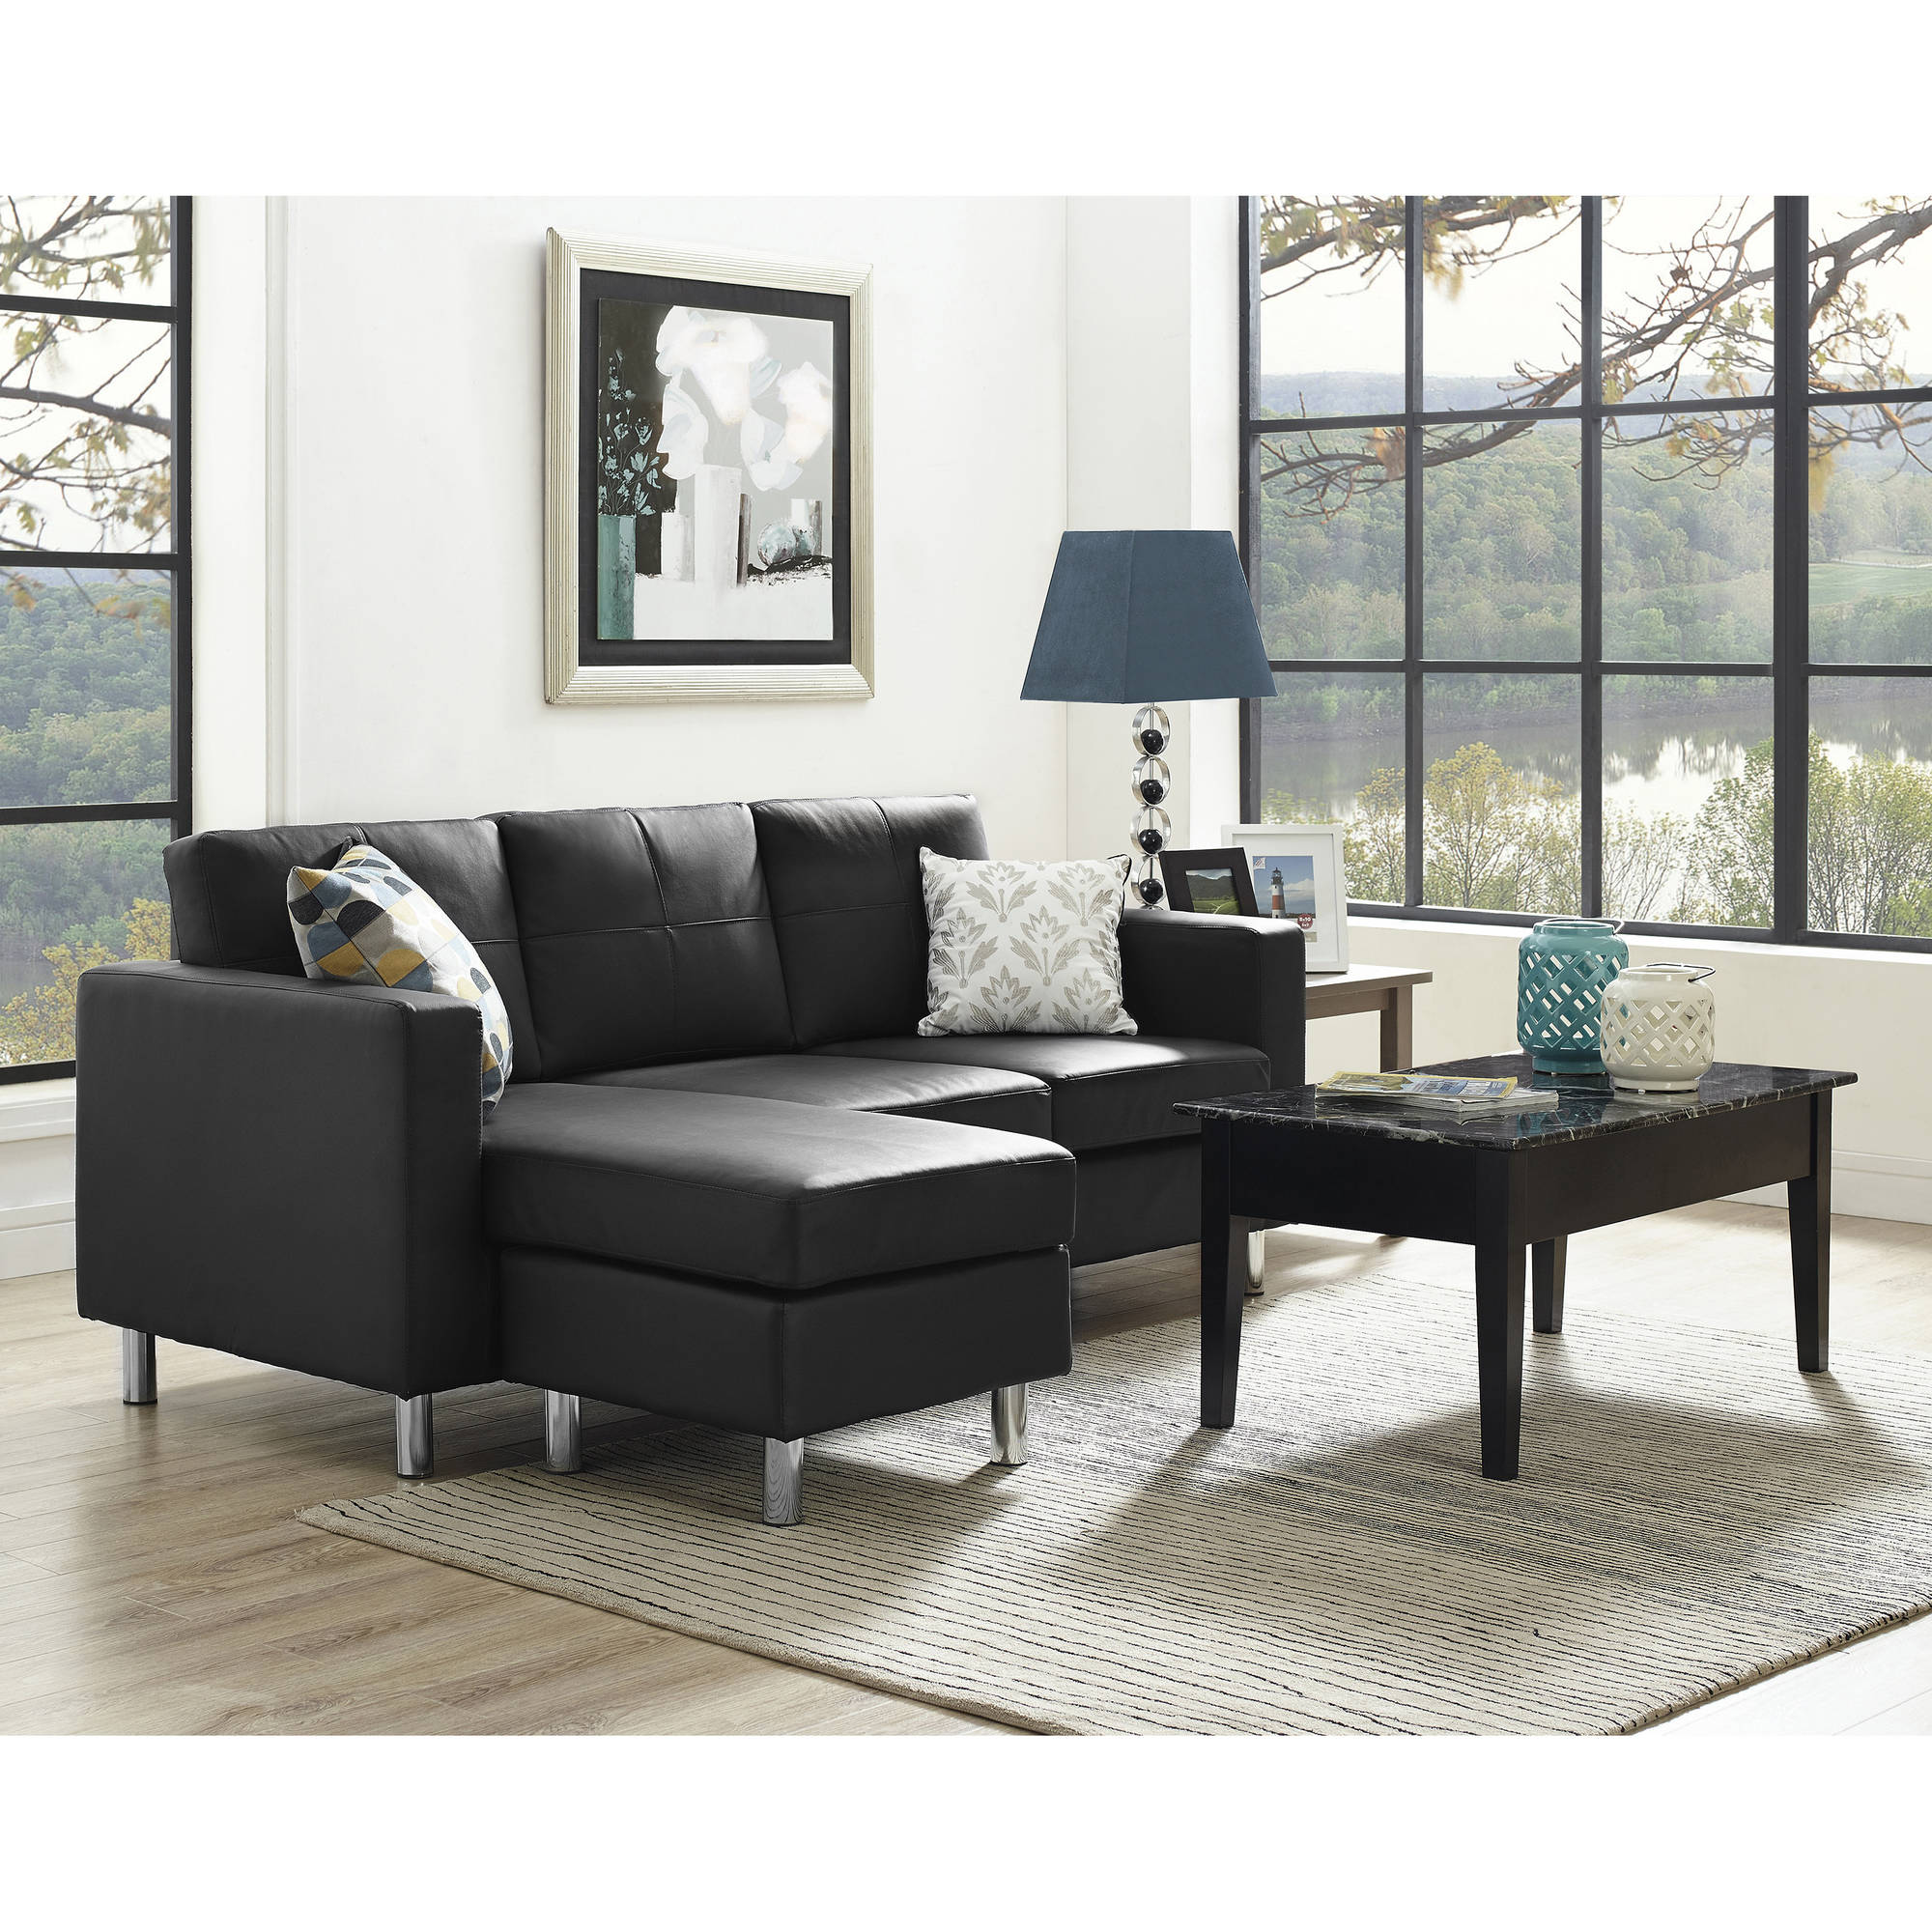 with products mn locator furniture item dealer presley b seats sofa ashley cocoa ahfa sectional sofas piece reclining